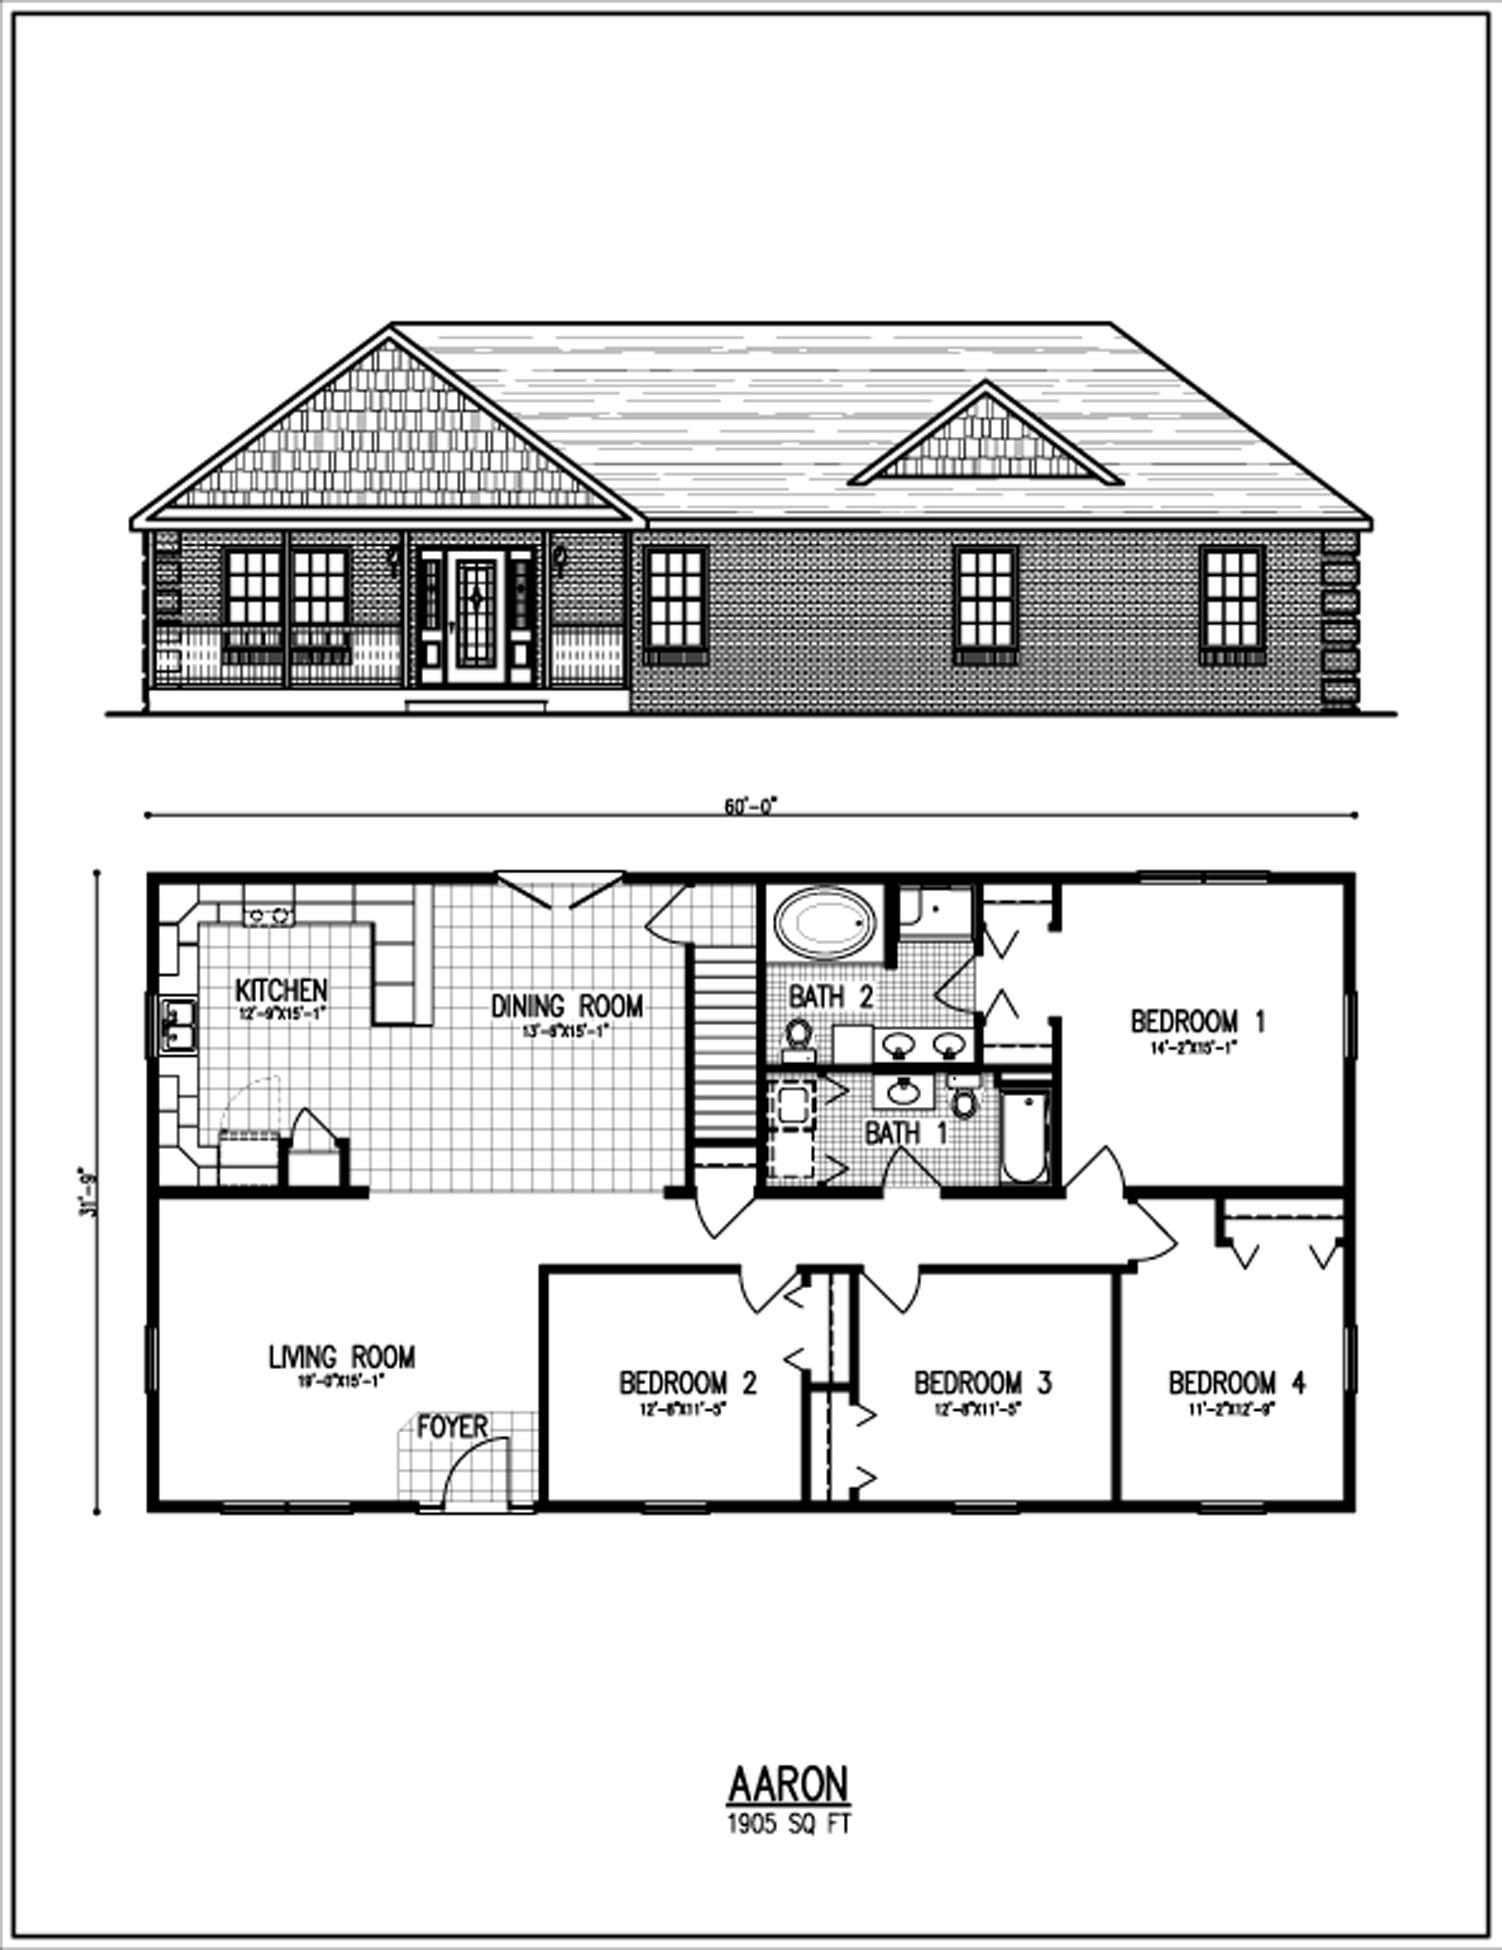 images about Small house plans on Pinterest Ranch homes